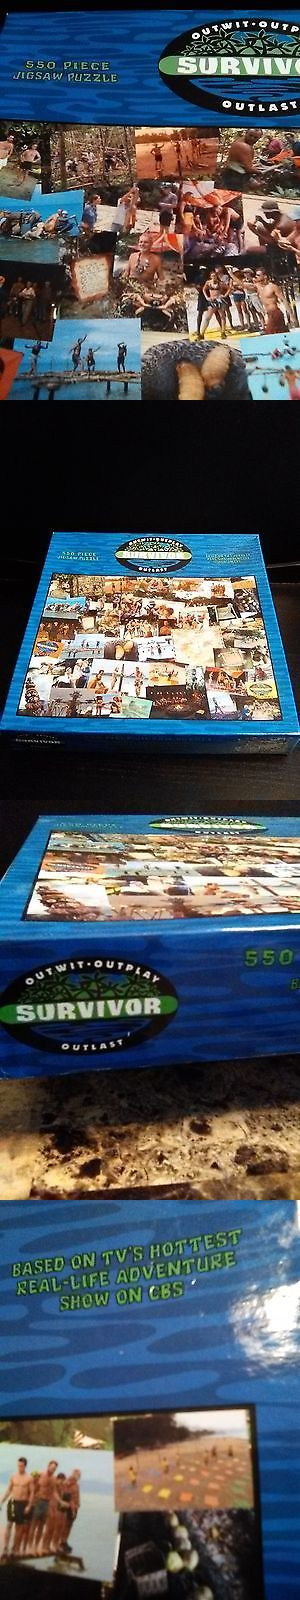 Jigsaw 19183: Survivor Season One Jigsaw Puzzle New Never Opened 550 Pieces Collectors Item -> BUY IT NOW ONLY: $31.95 on eBay!